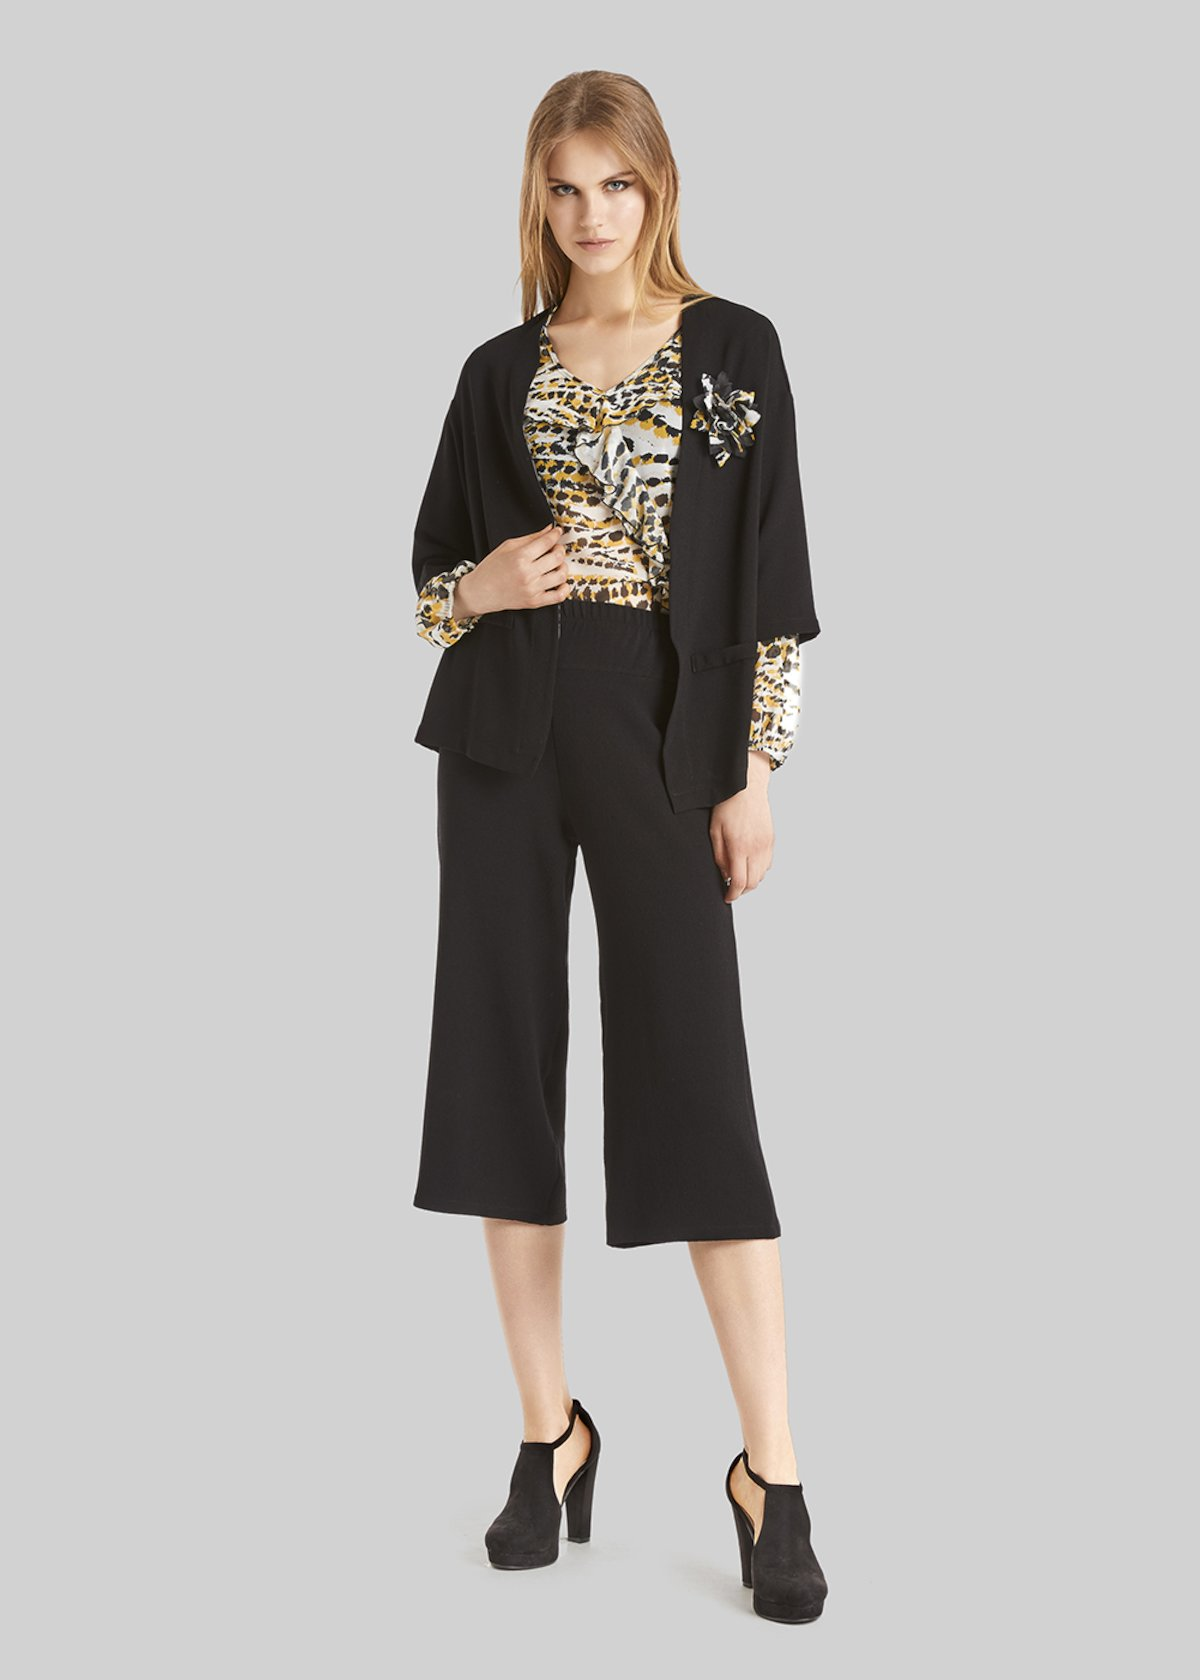 Crepe Carol shrug with flower-brooch detail - Black